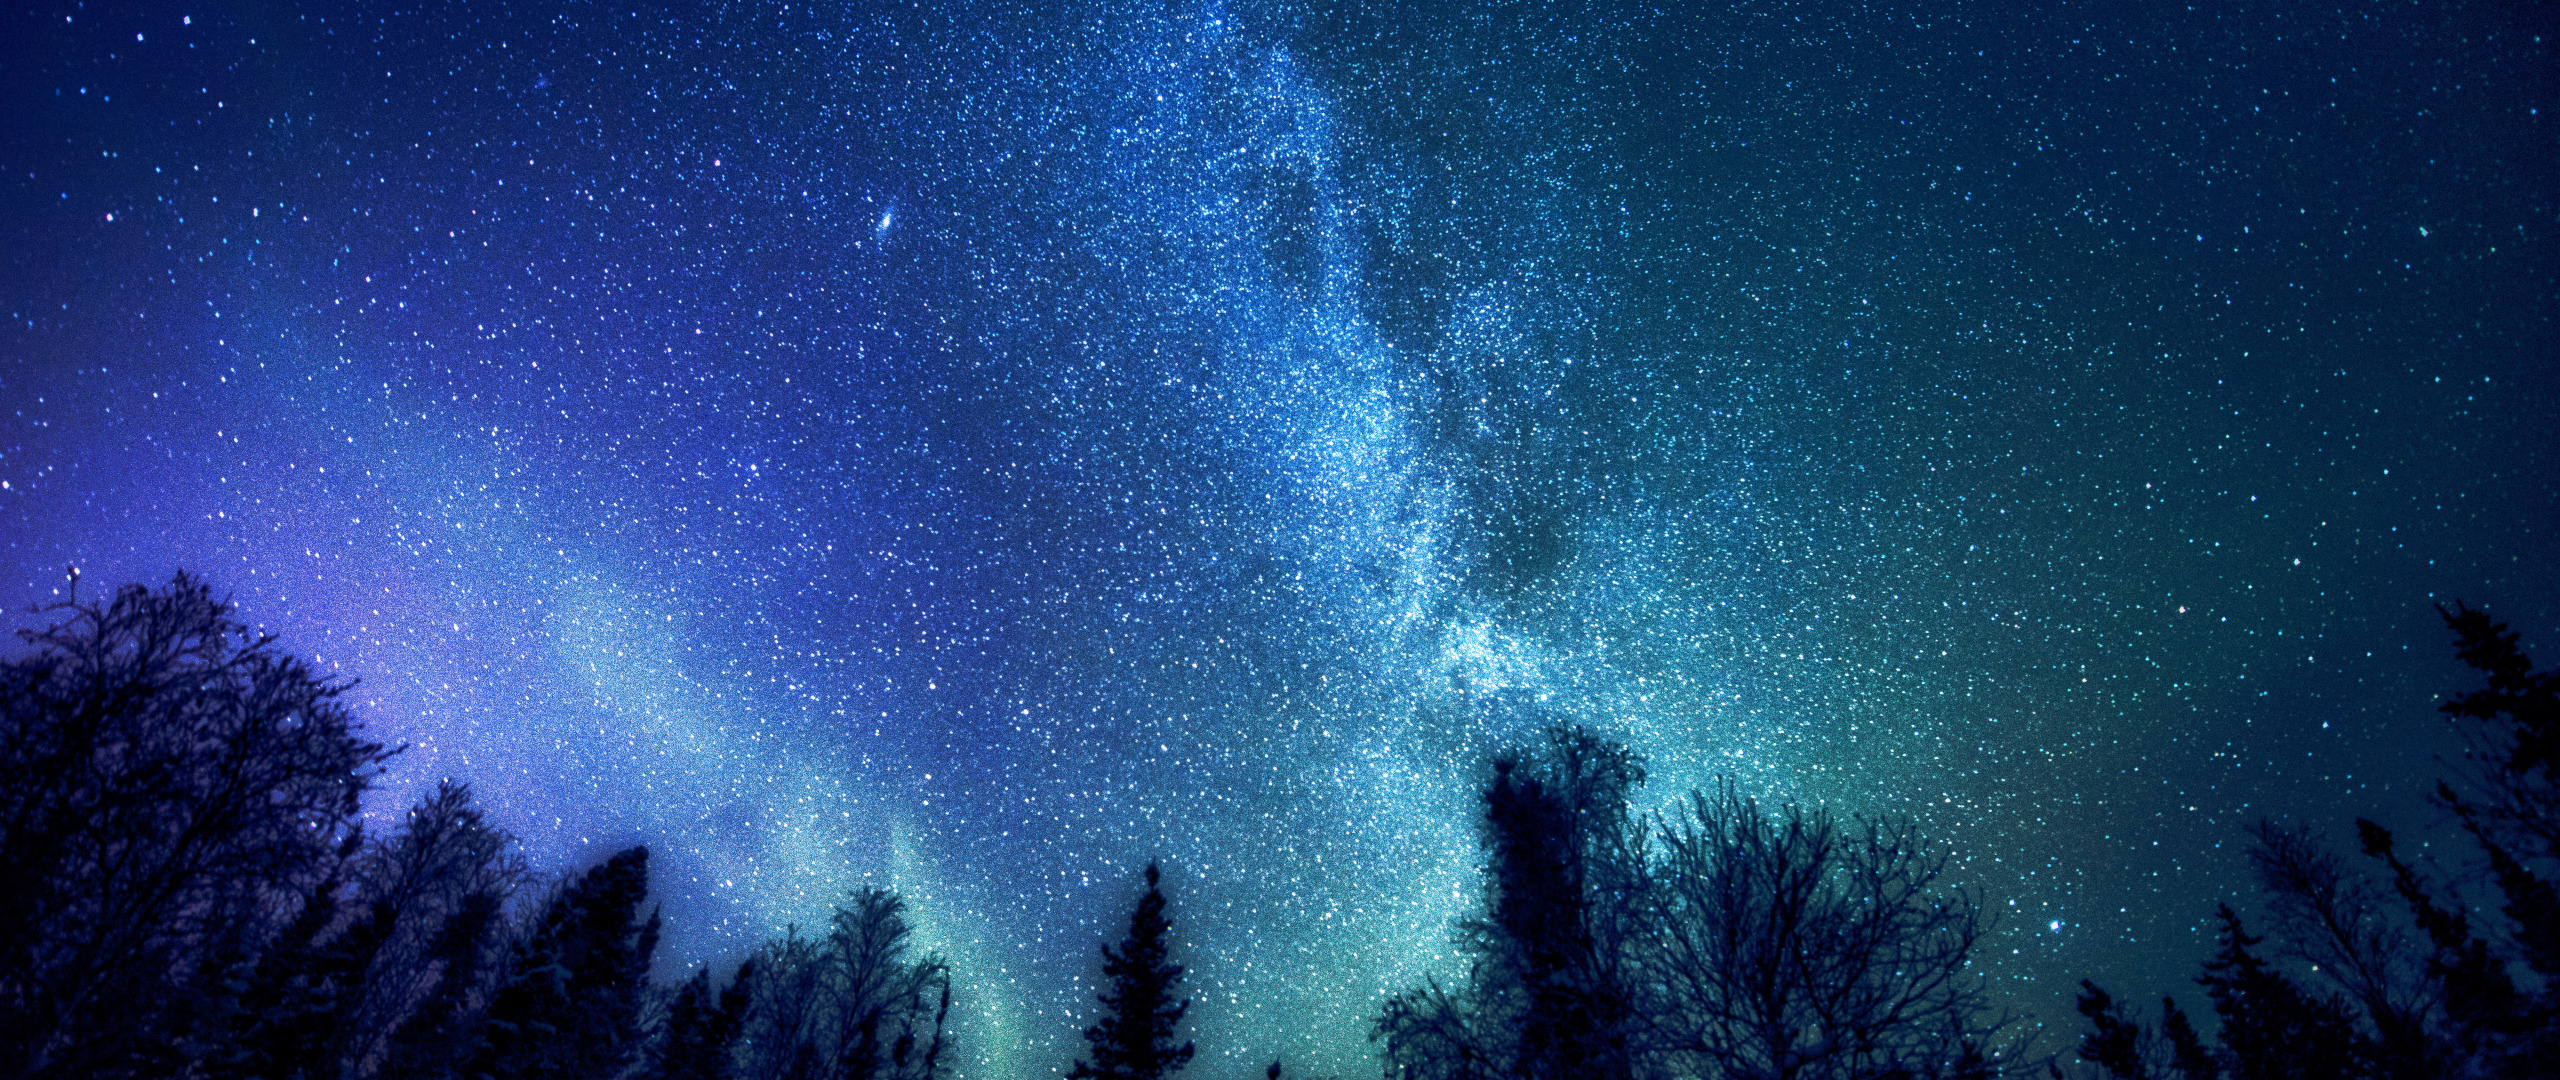 Night Sky Stars Background Psdgraphics - HD 2560×1080